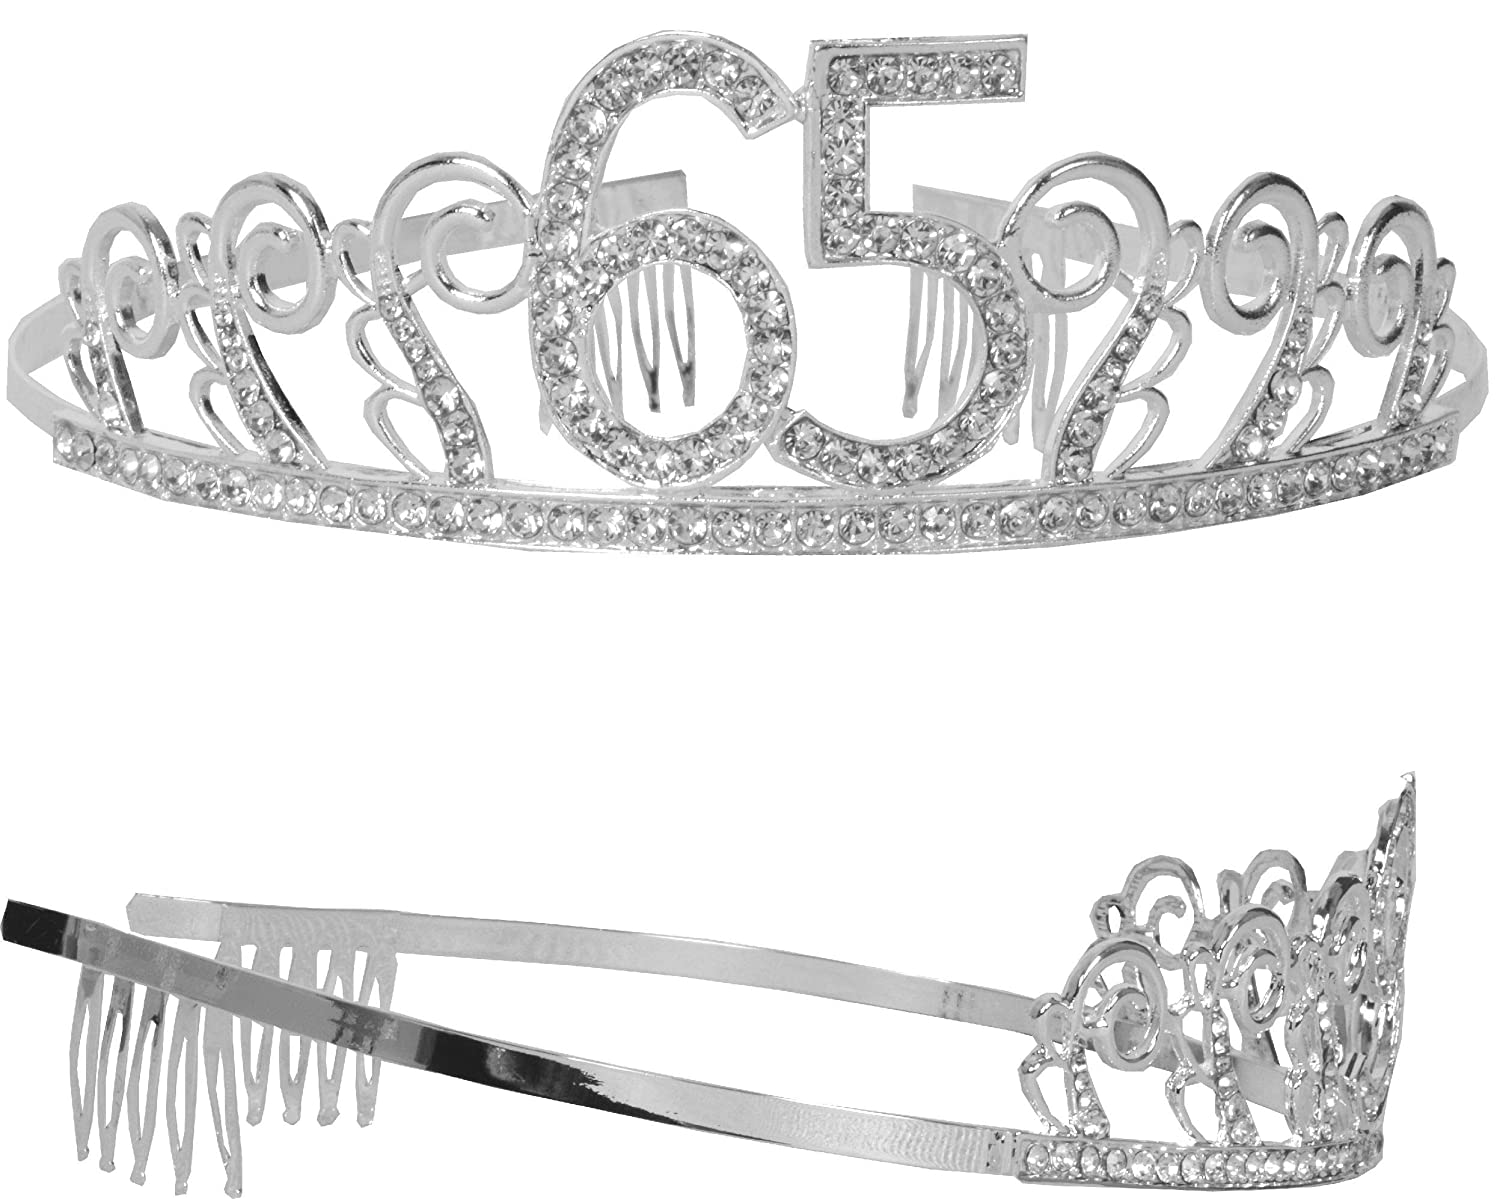 HAPPY 65th Birthday Party Supplies Tiara+Sash 65th Birthday Tiara and Sash 65th Glitter Satin Sash and Crystal Tiara Birthday Crown for 65th Birthday Party Supplies and Decorations Meant2ToBe